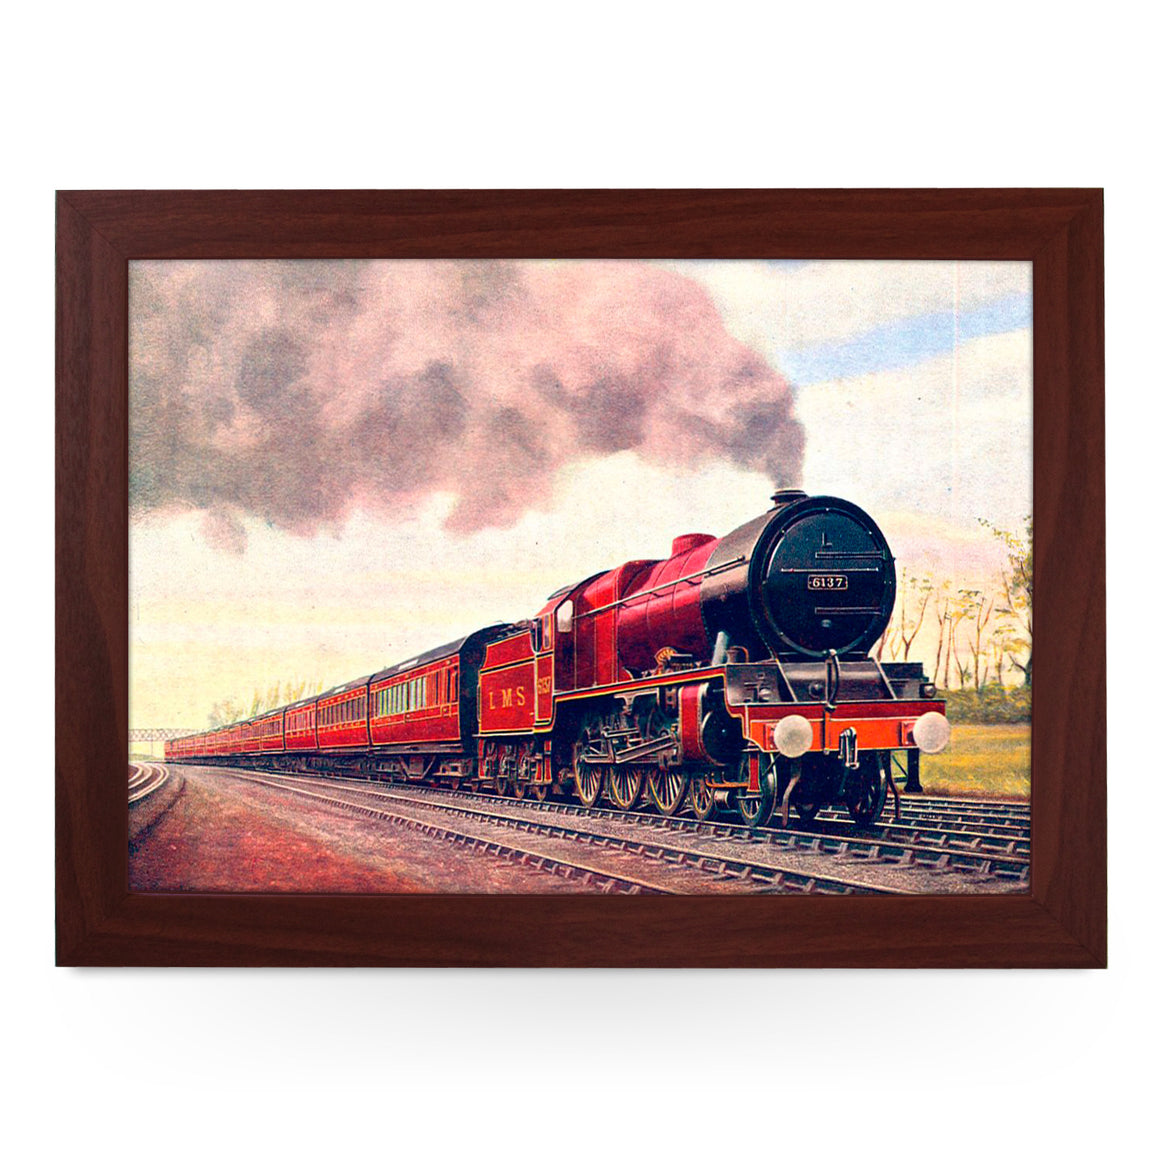 Royal Scotsman 1928 Train Lap Tray - L0118